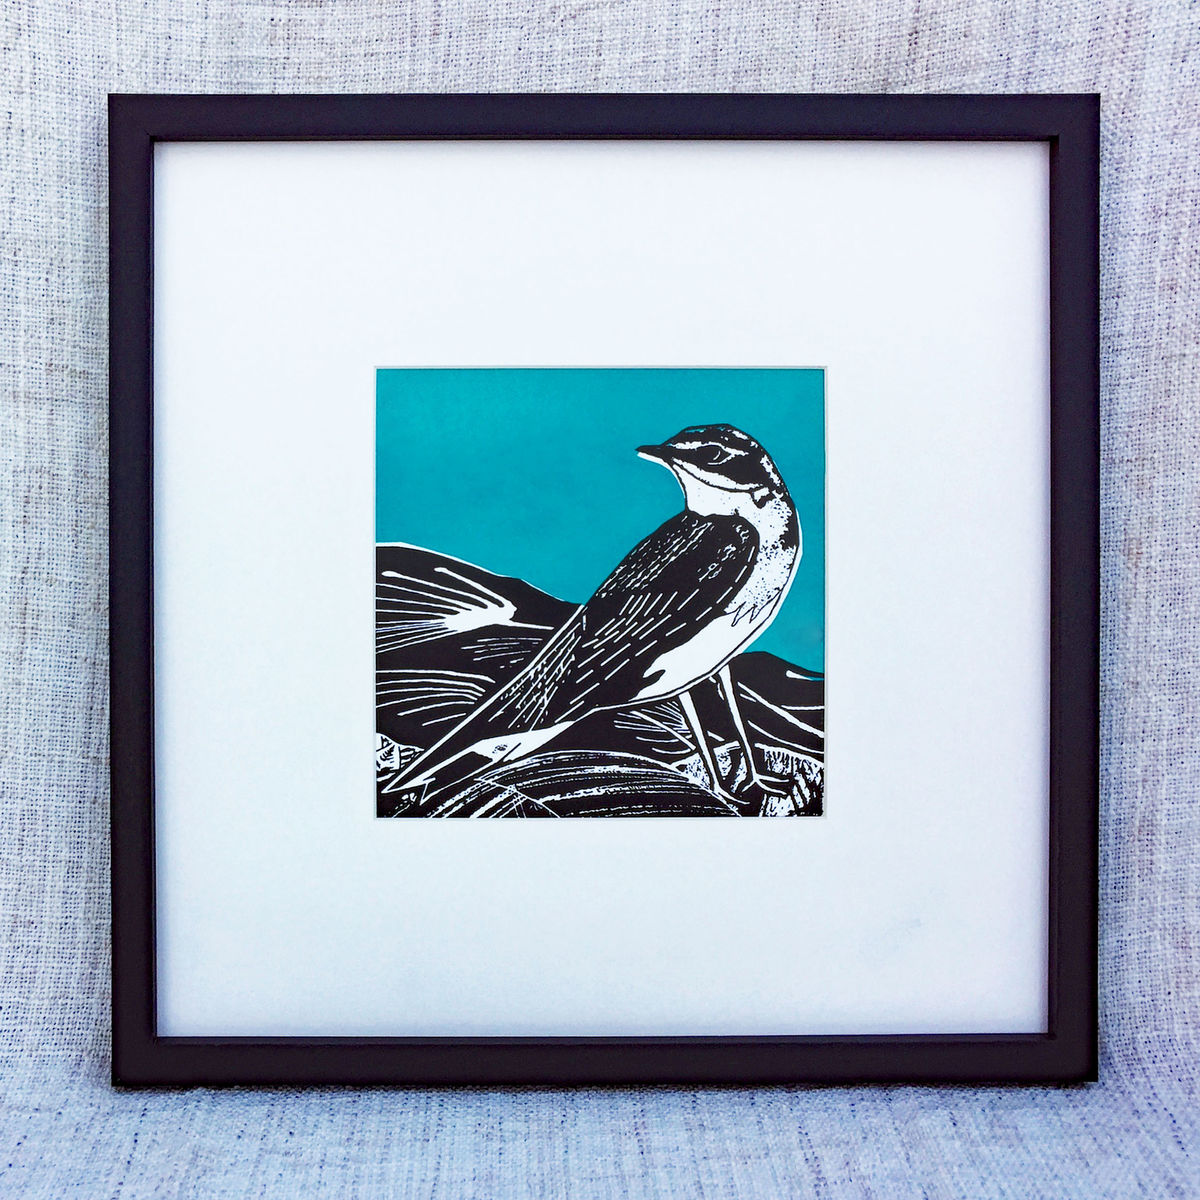 'Wheatear, teal' - original artwork - product image